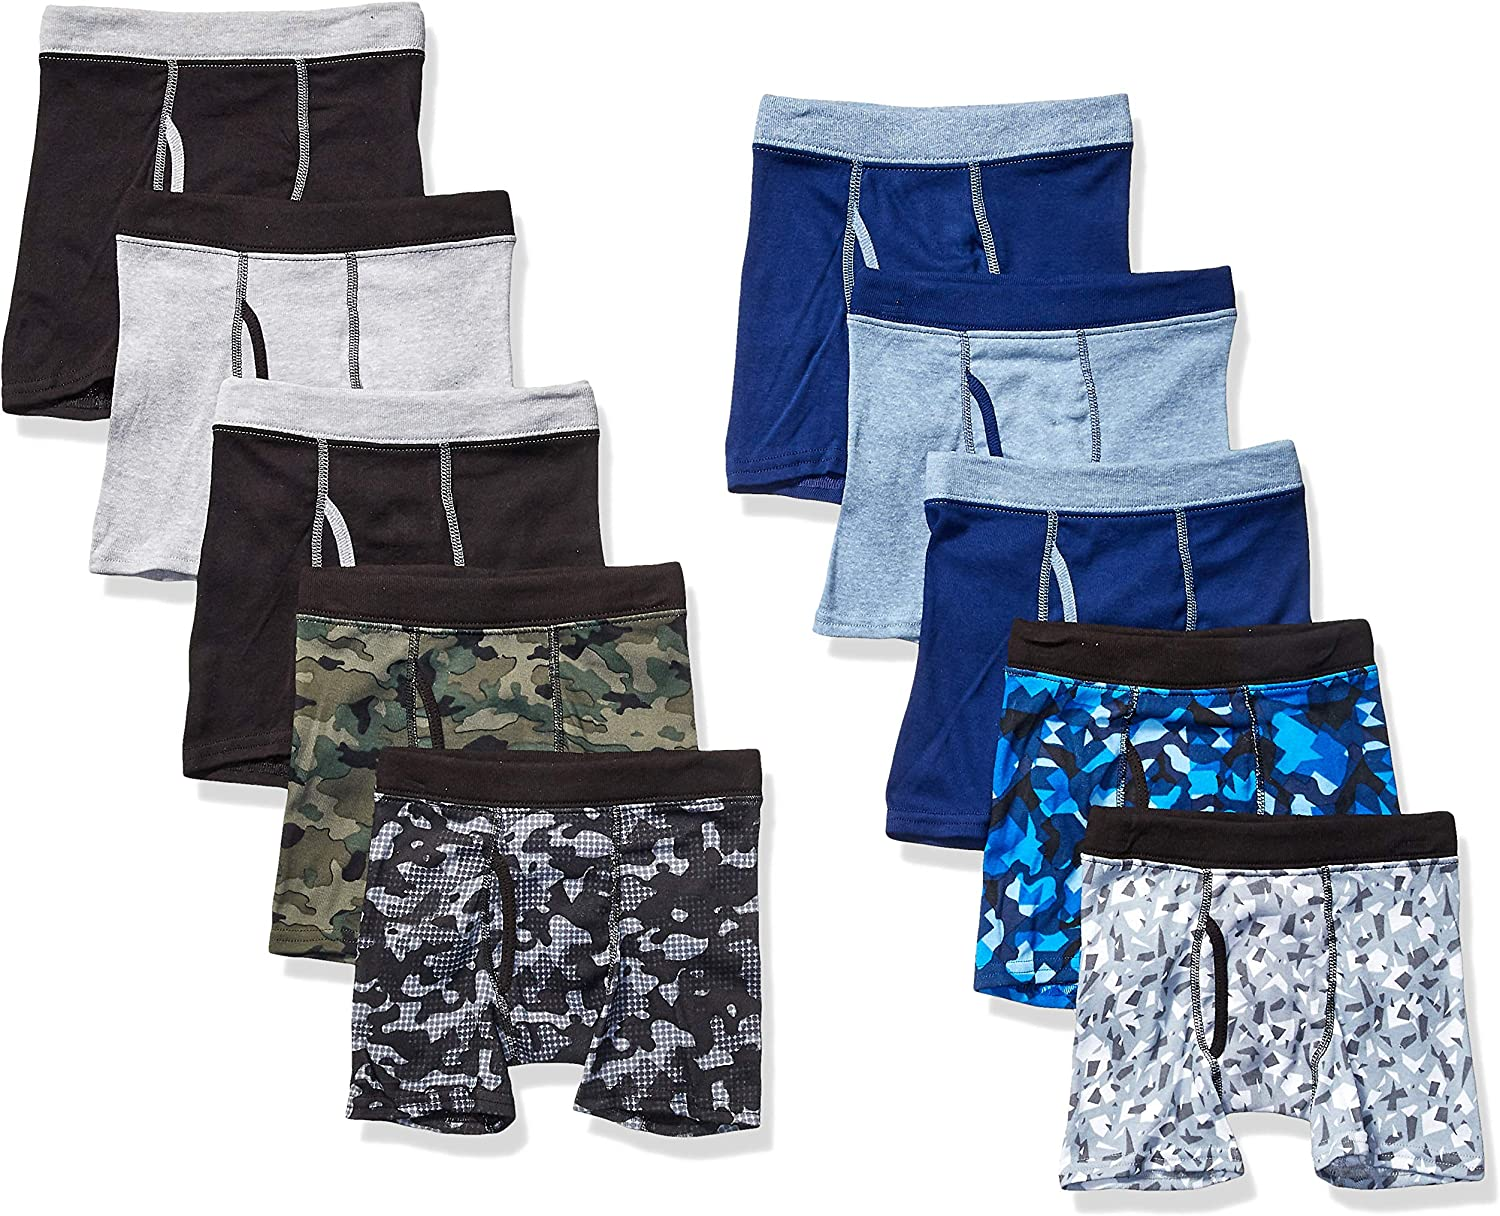 Hanes Boys' ComfortSoft Waistband Boxer Briefs 10-Pack (Assorted/Colors May Vary): Clothing